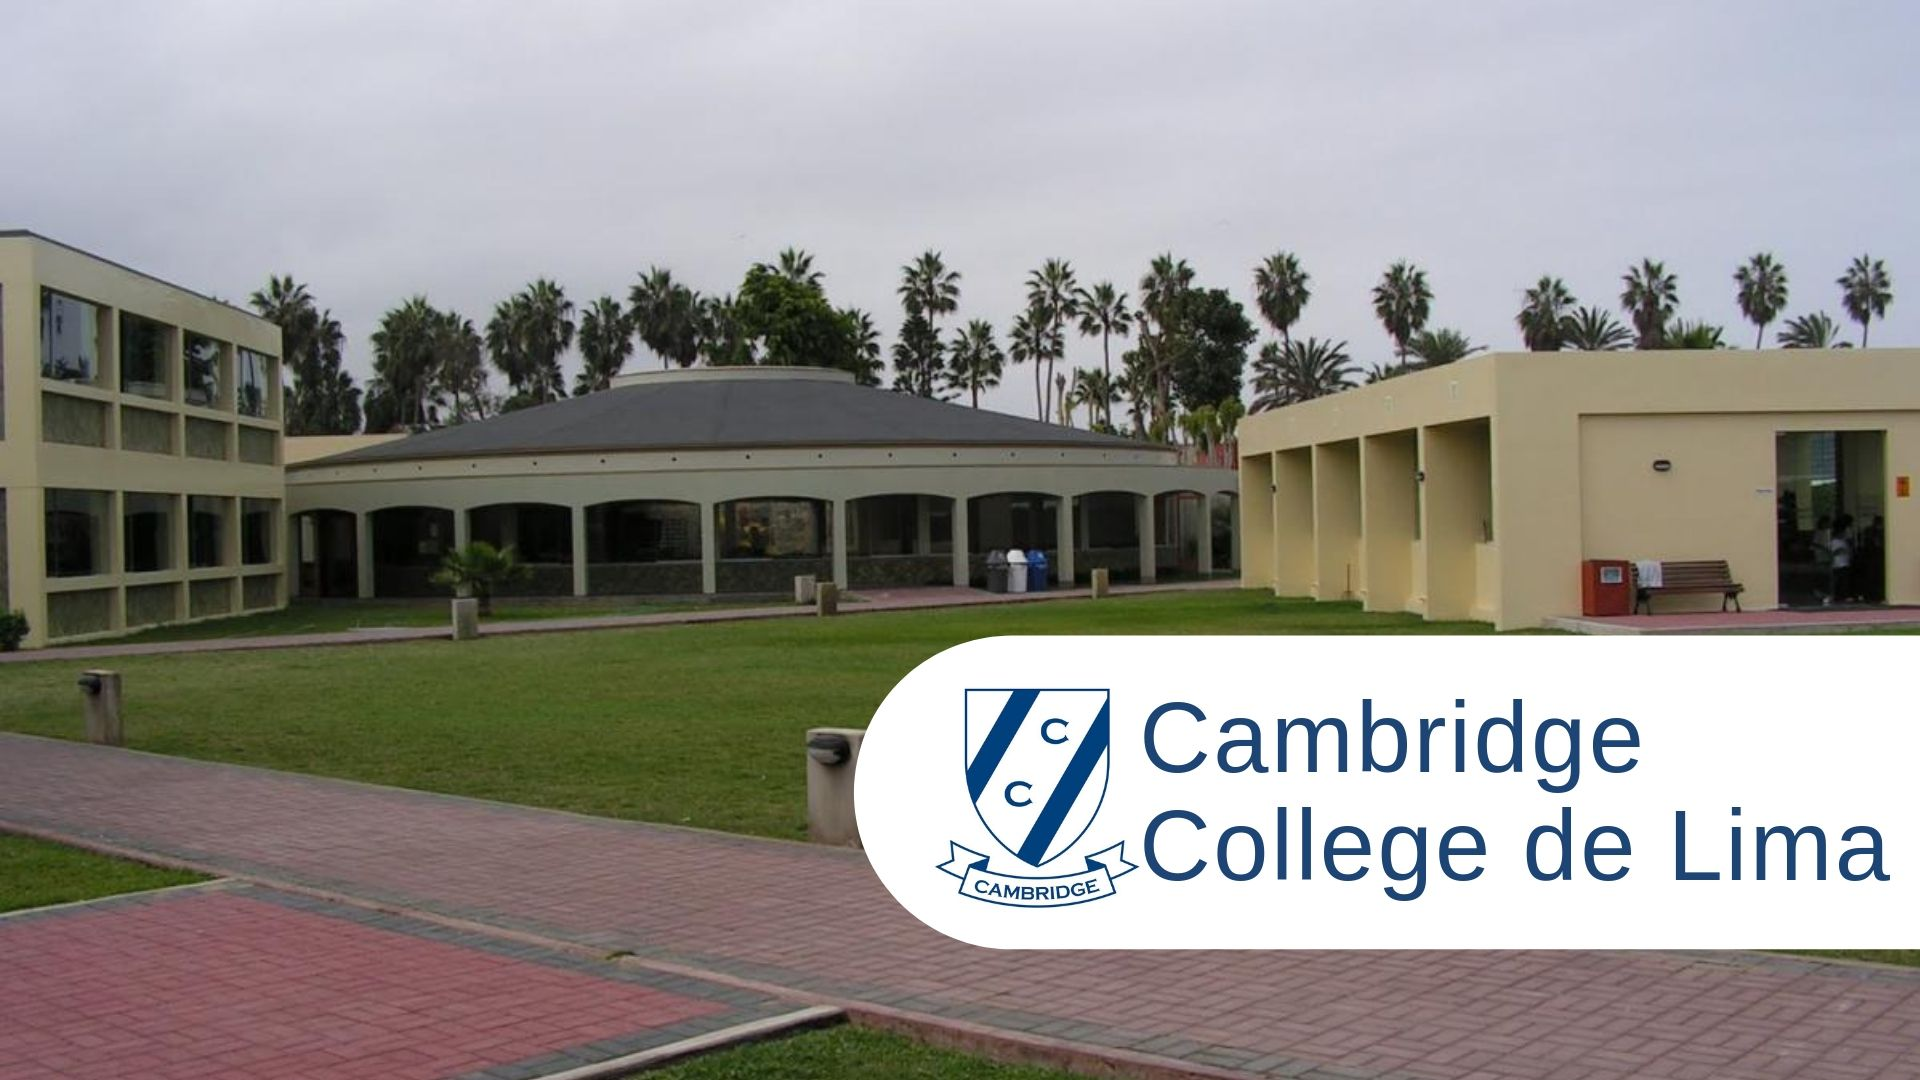 Cambridge College de Lima